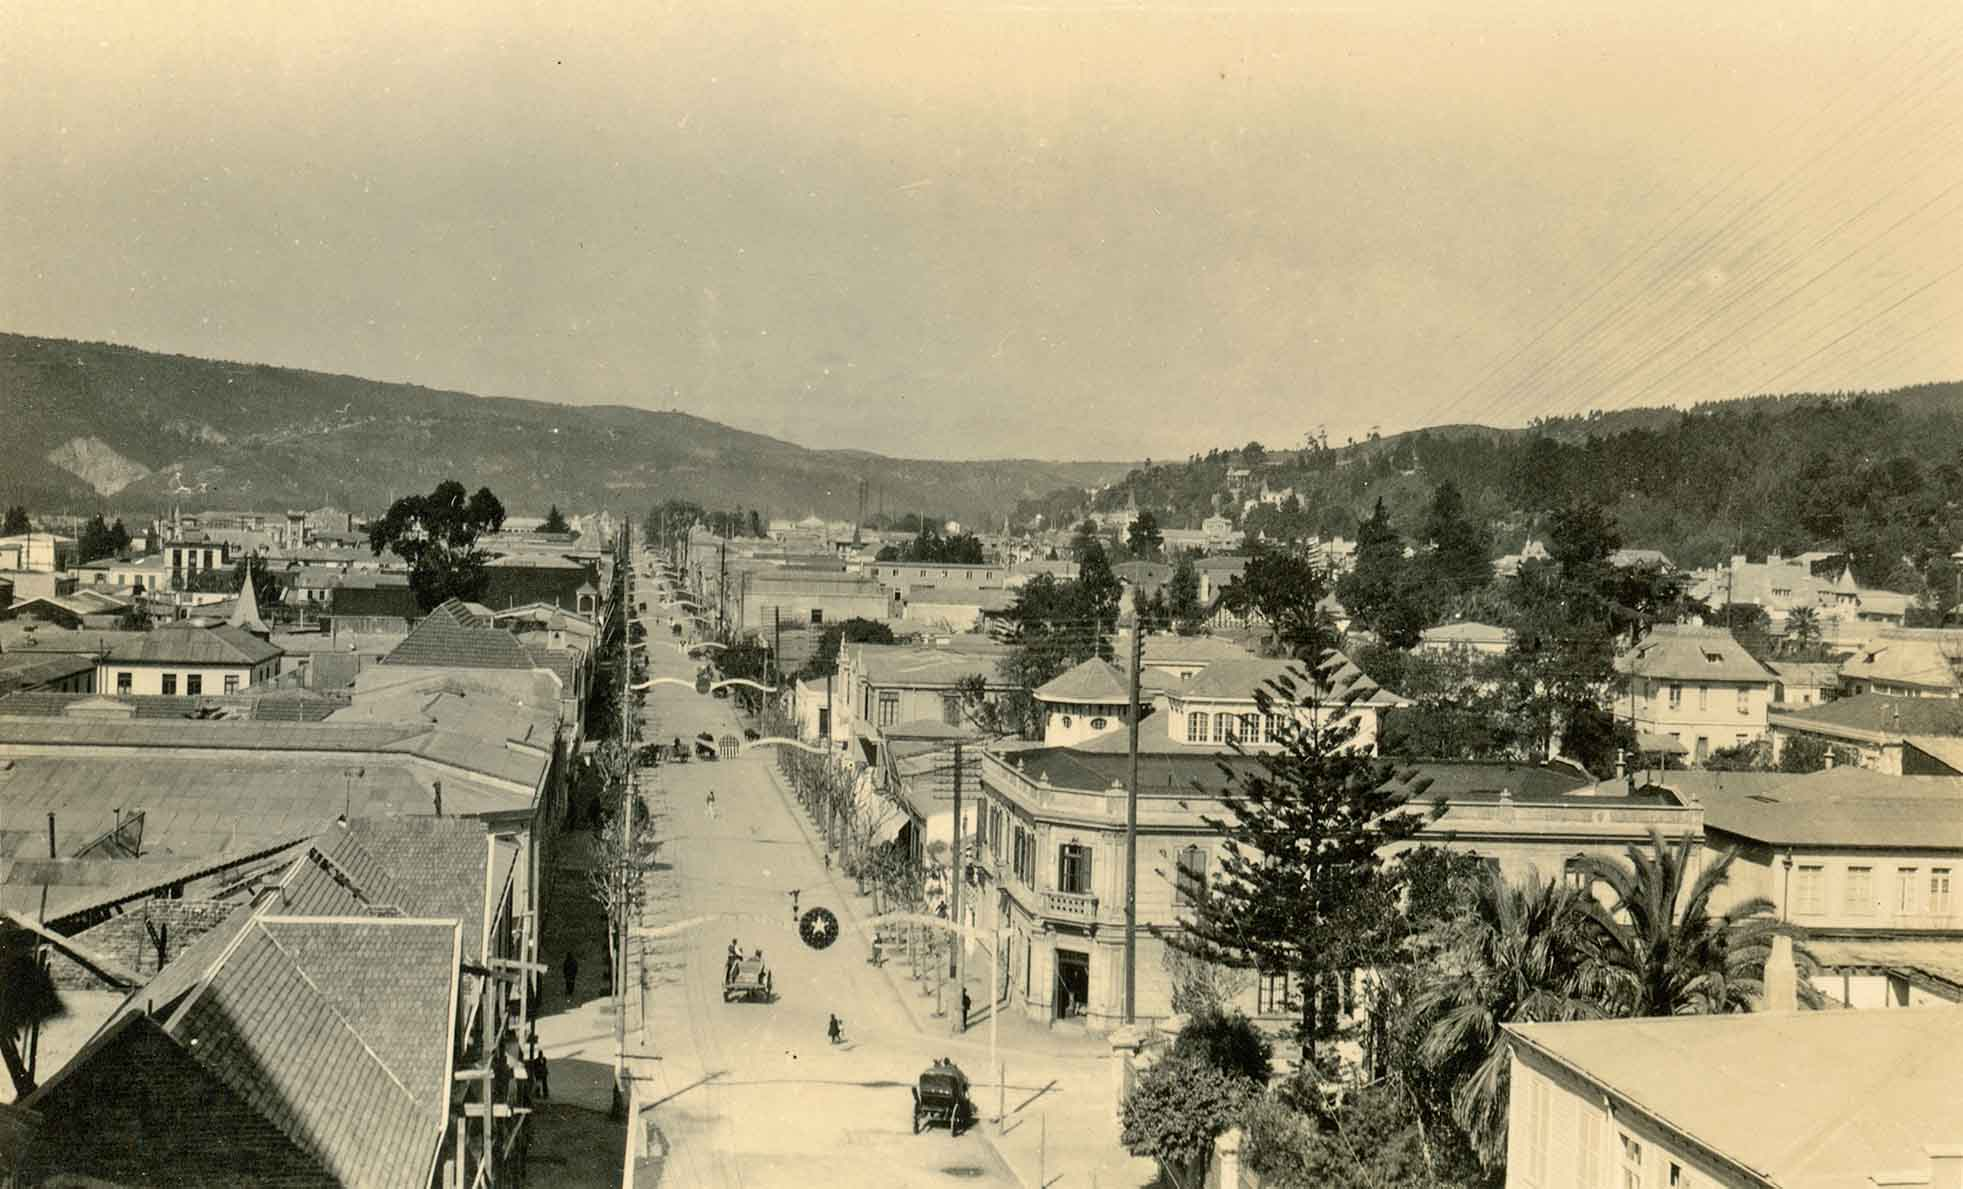 Enterreno - Fotos históricas de chile - fotos antiguas de Chile - Calle Valparaíso de viña del Mar en 1925